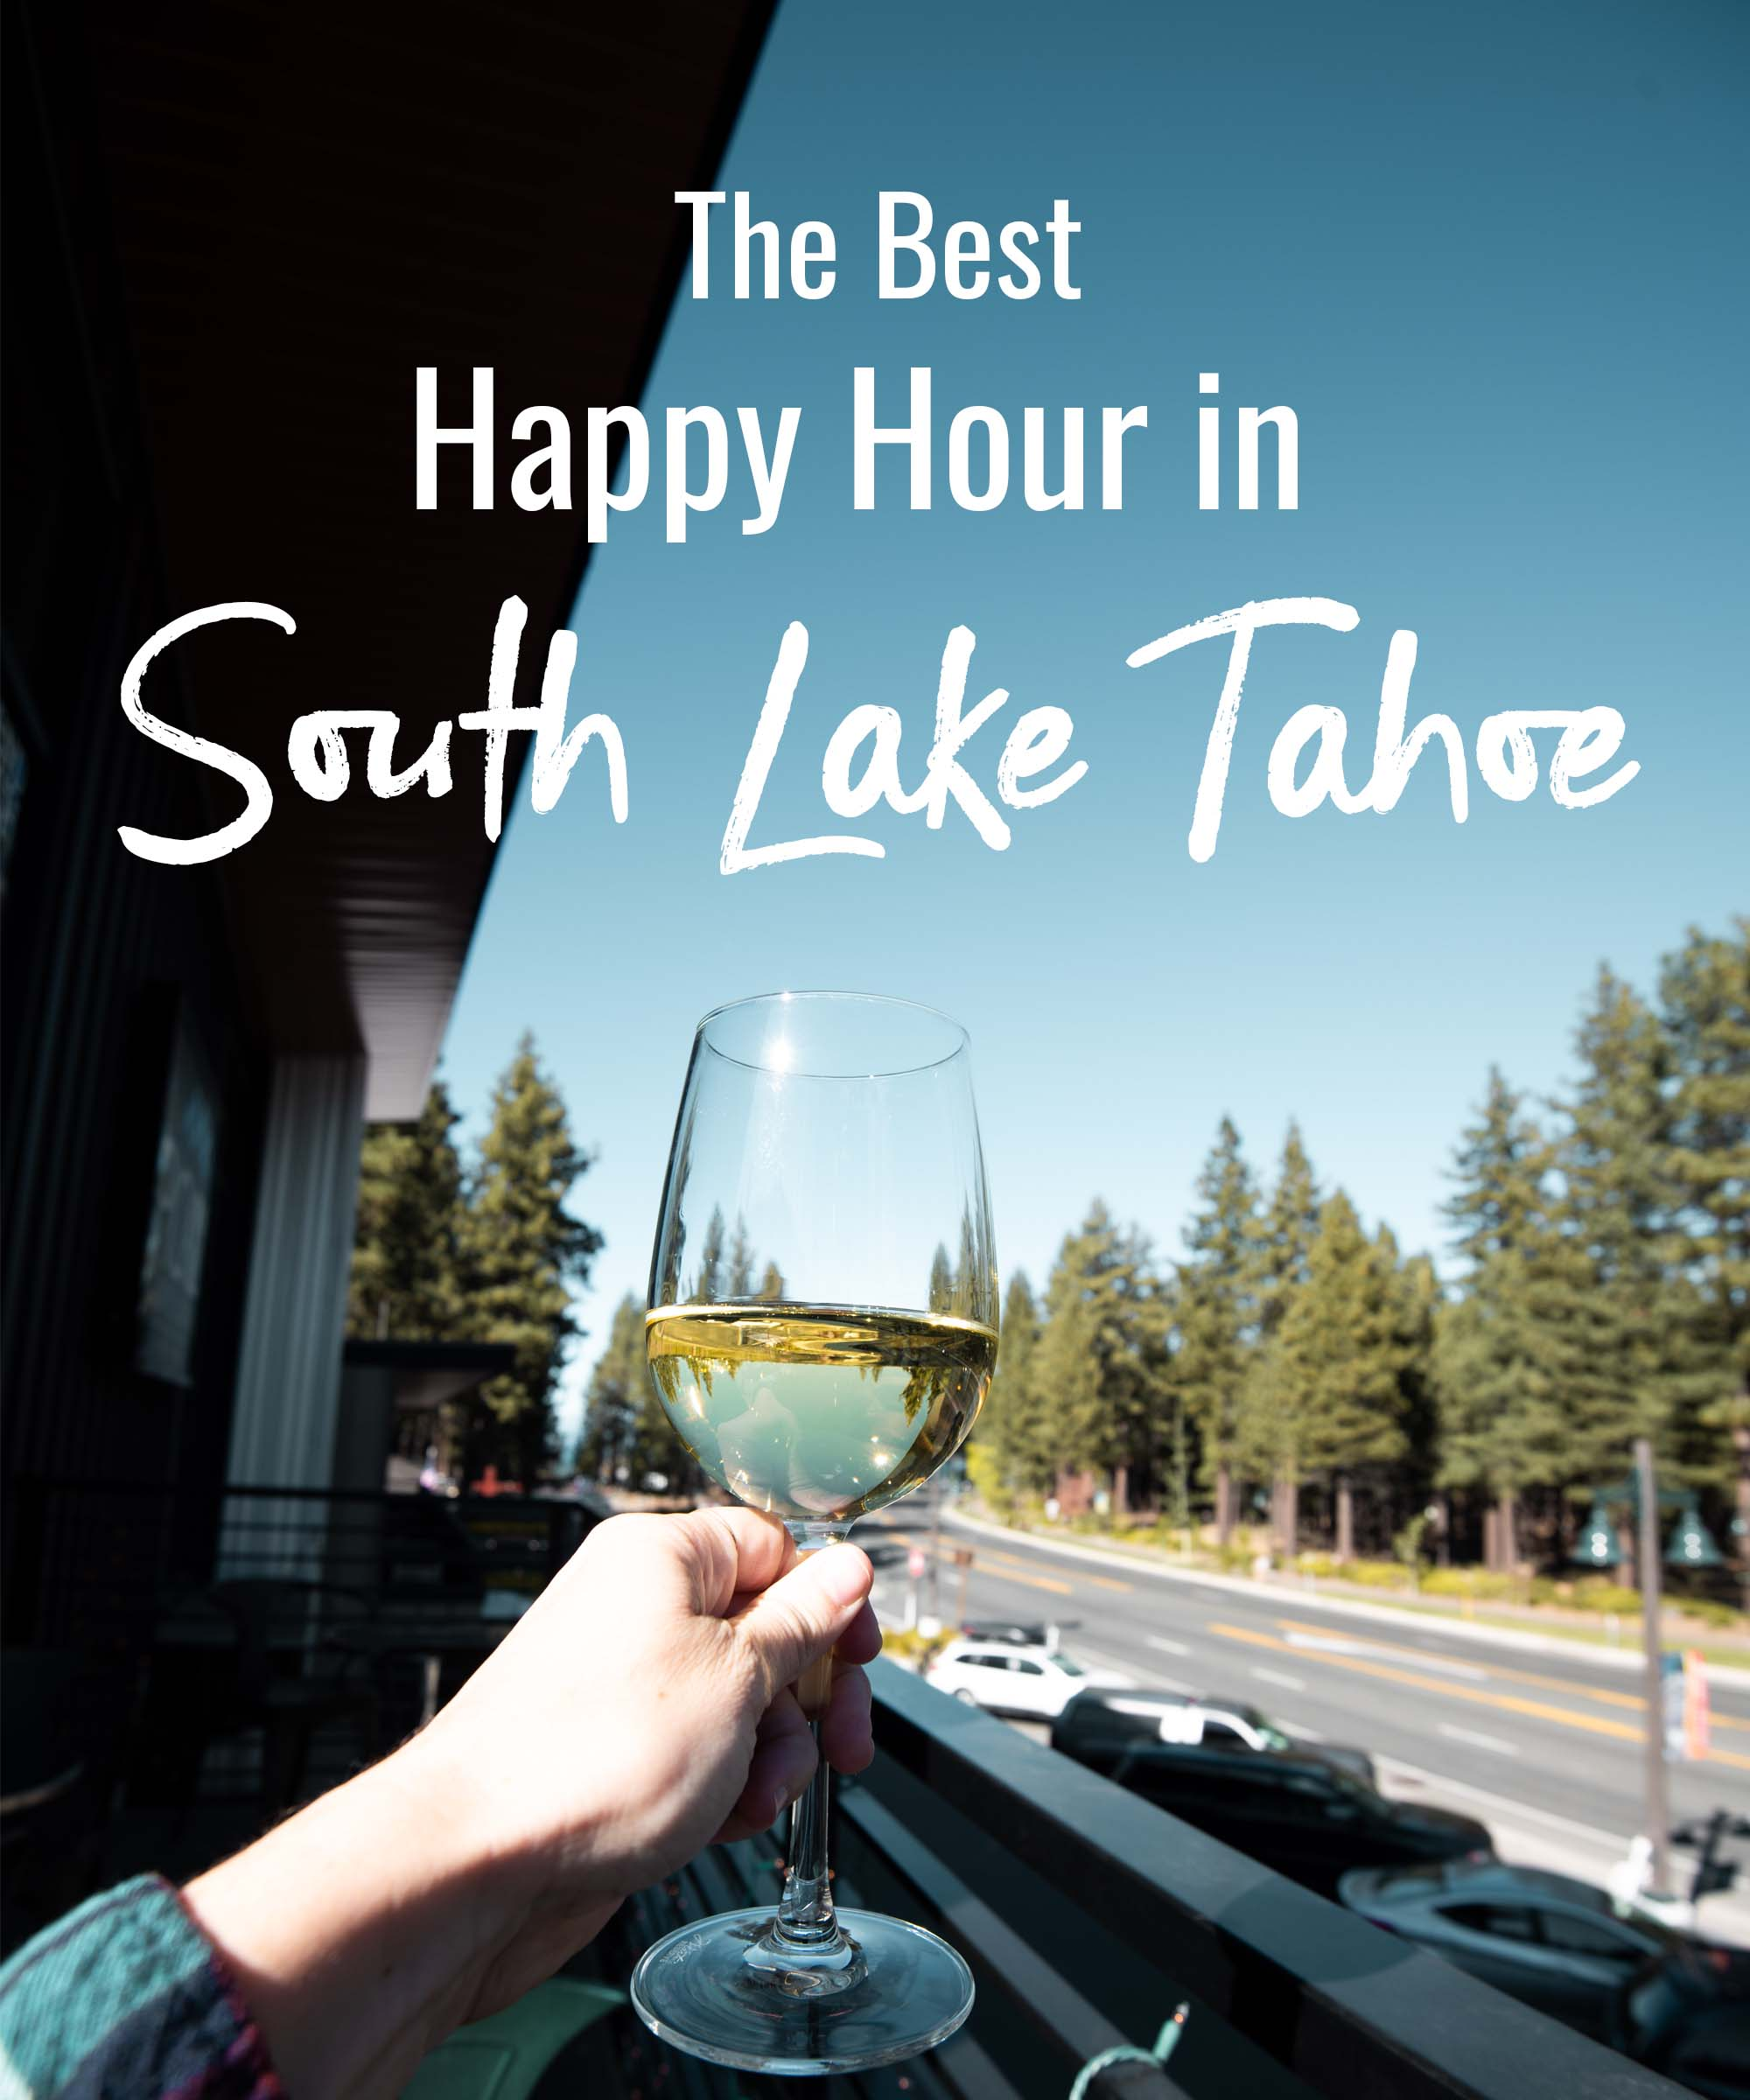 The Best Happy Hour in South Lake Tahoe